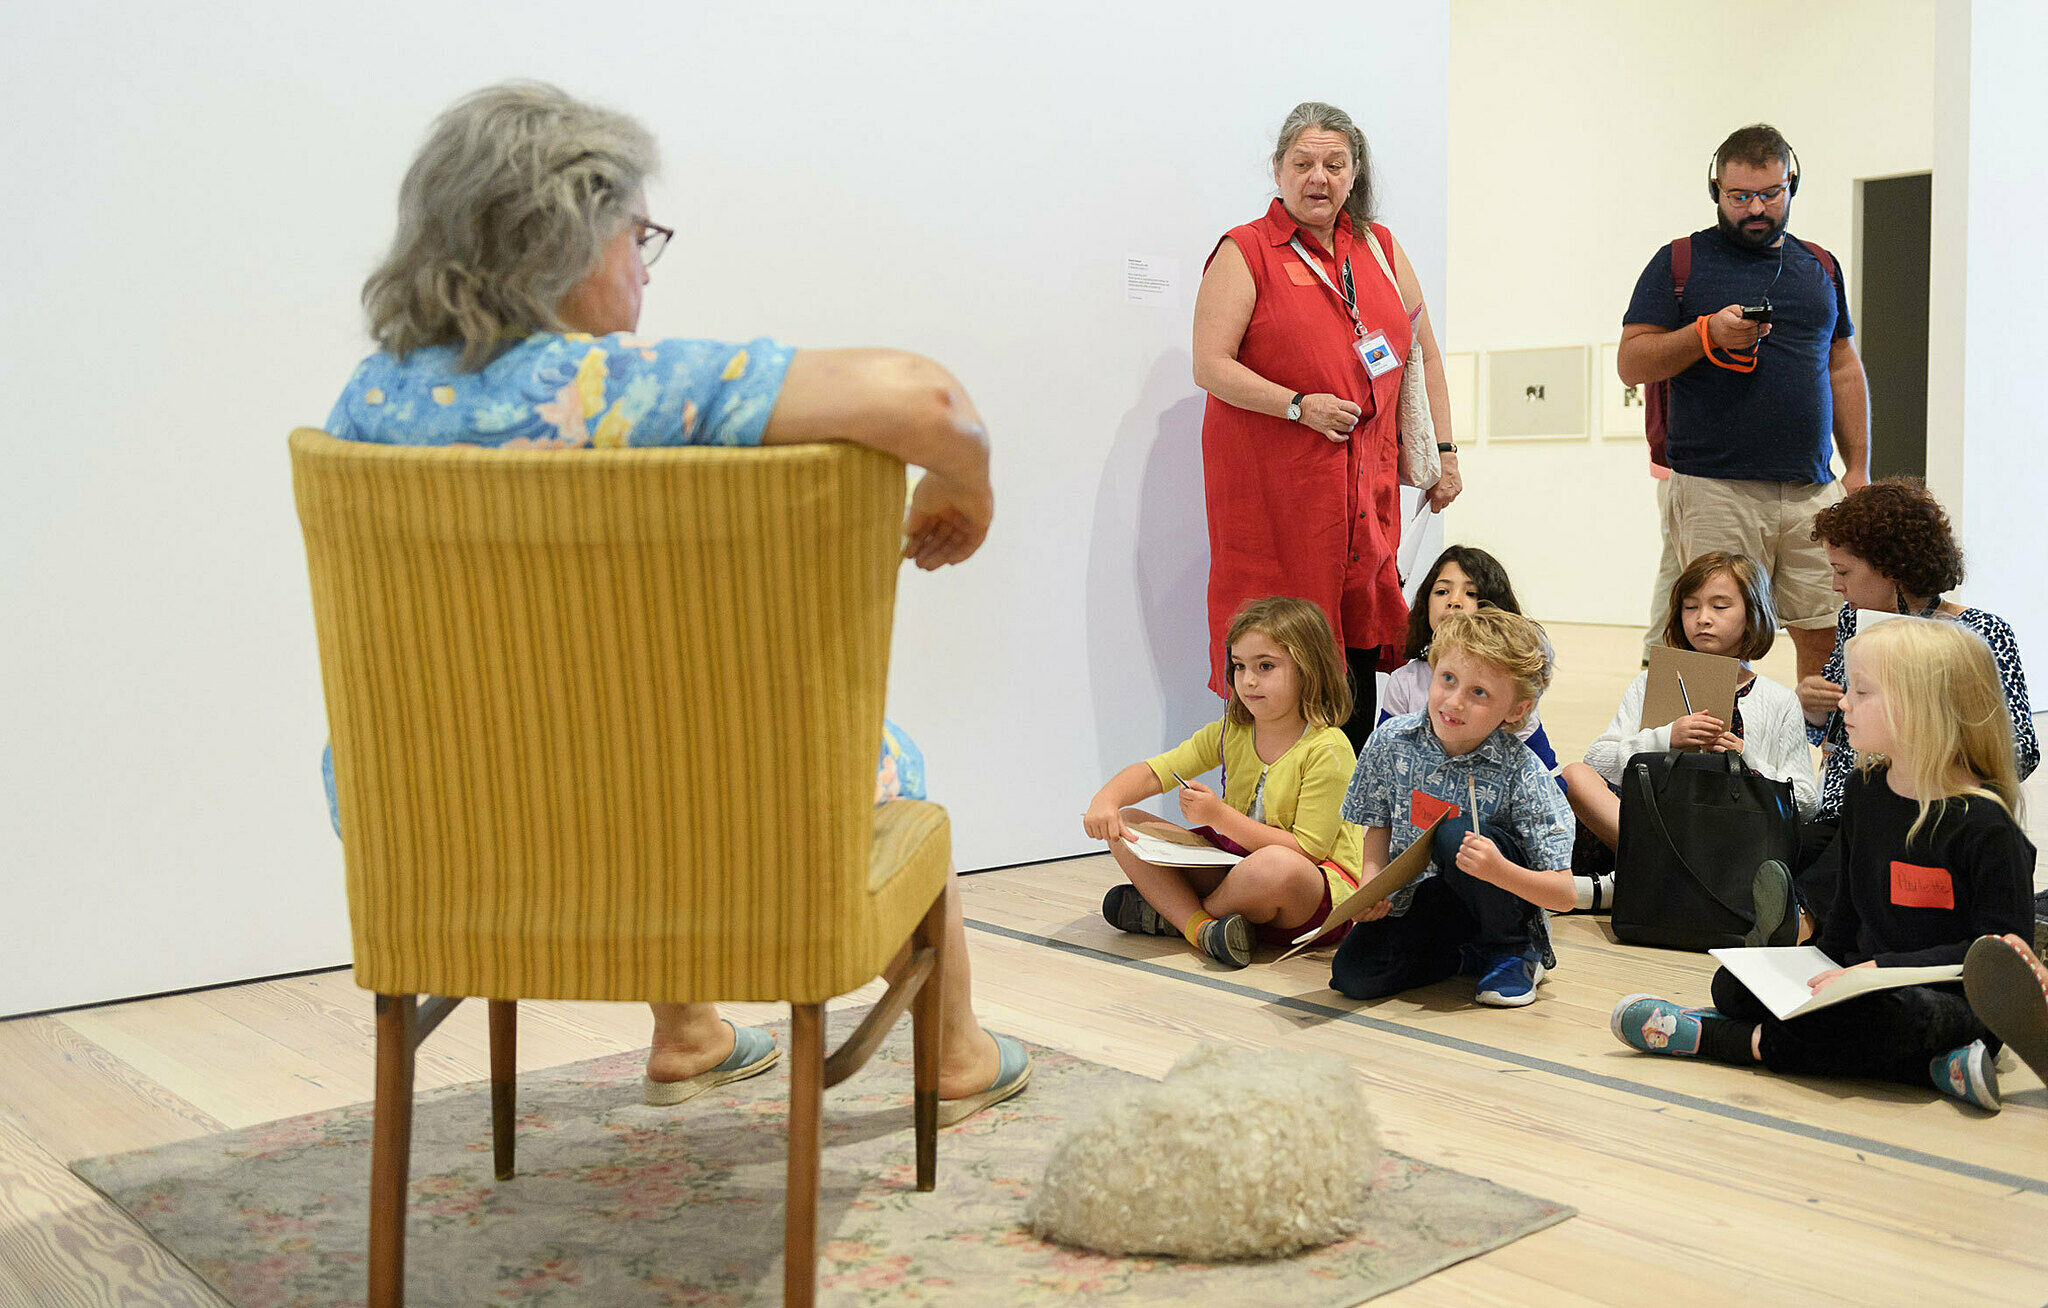 Families sketch together in the galleries